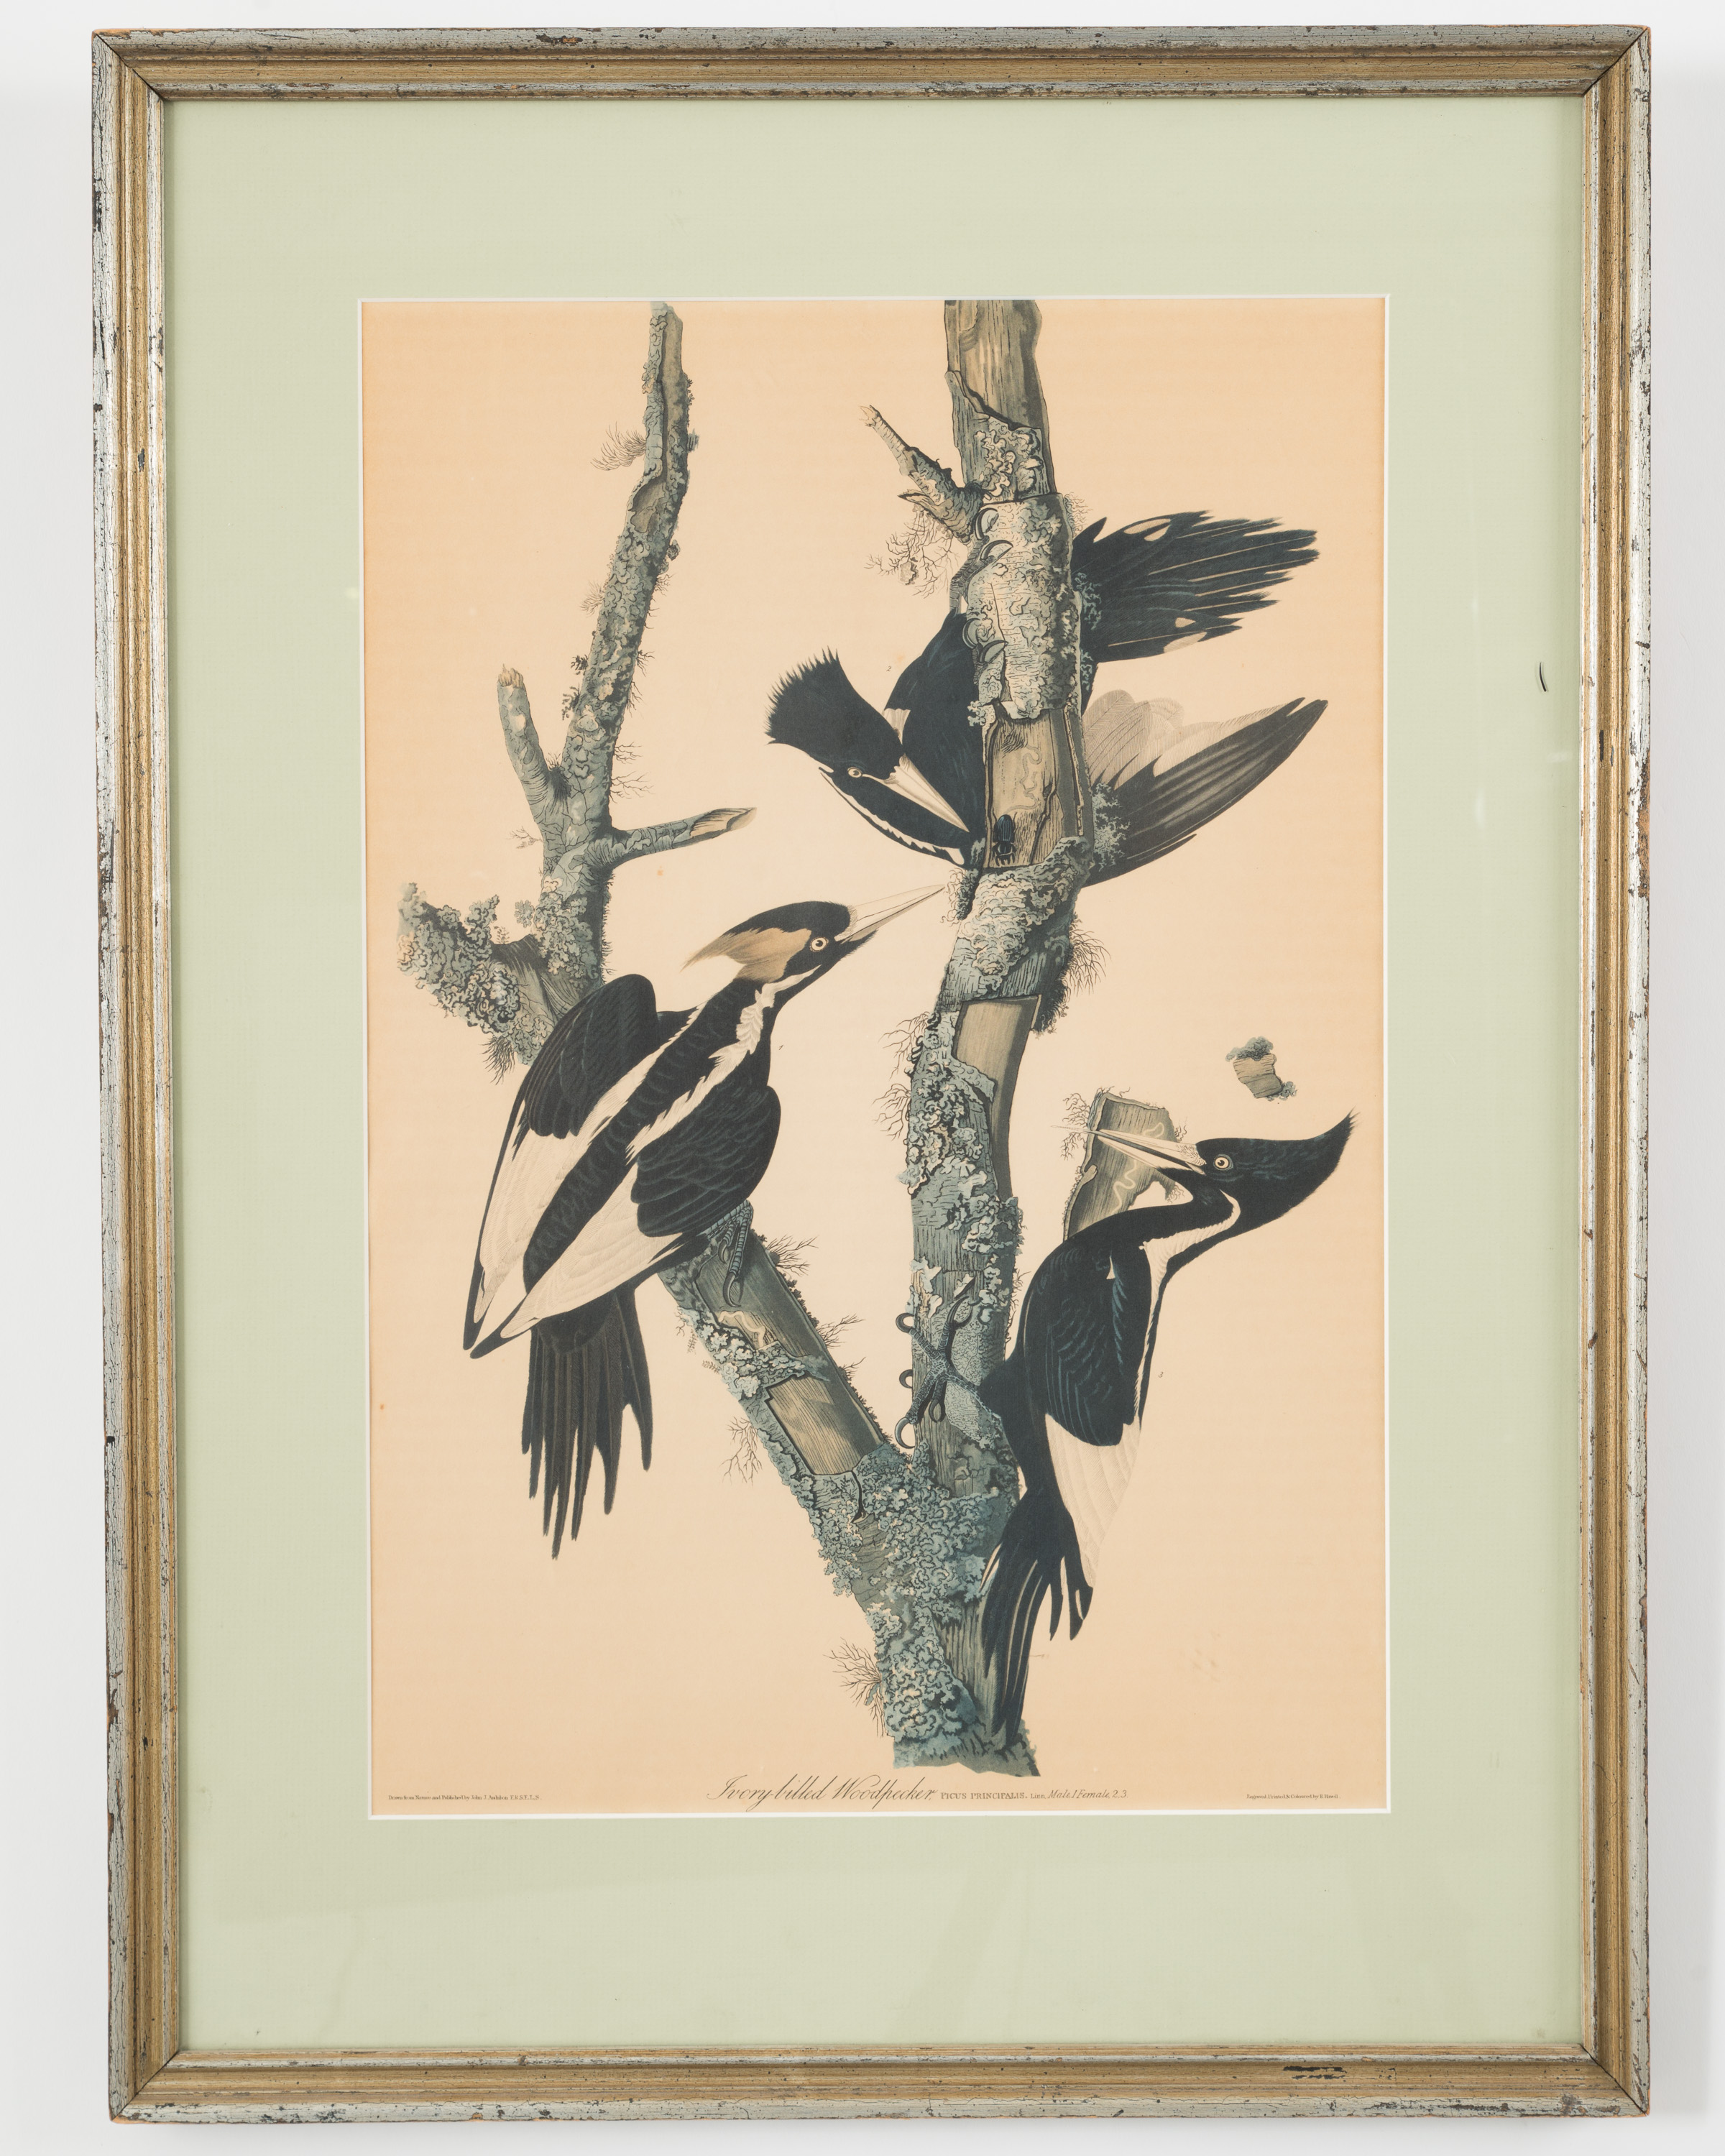 Vintage JJ Audubon Color Print Of Three Ivory Billed Woodpeckers Under Clear Plexiglass In Sage Green Matting And A Gray Painted Rectangular Wooden Frame